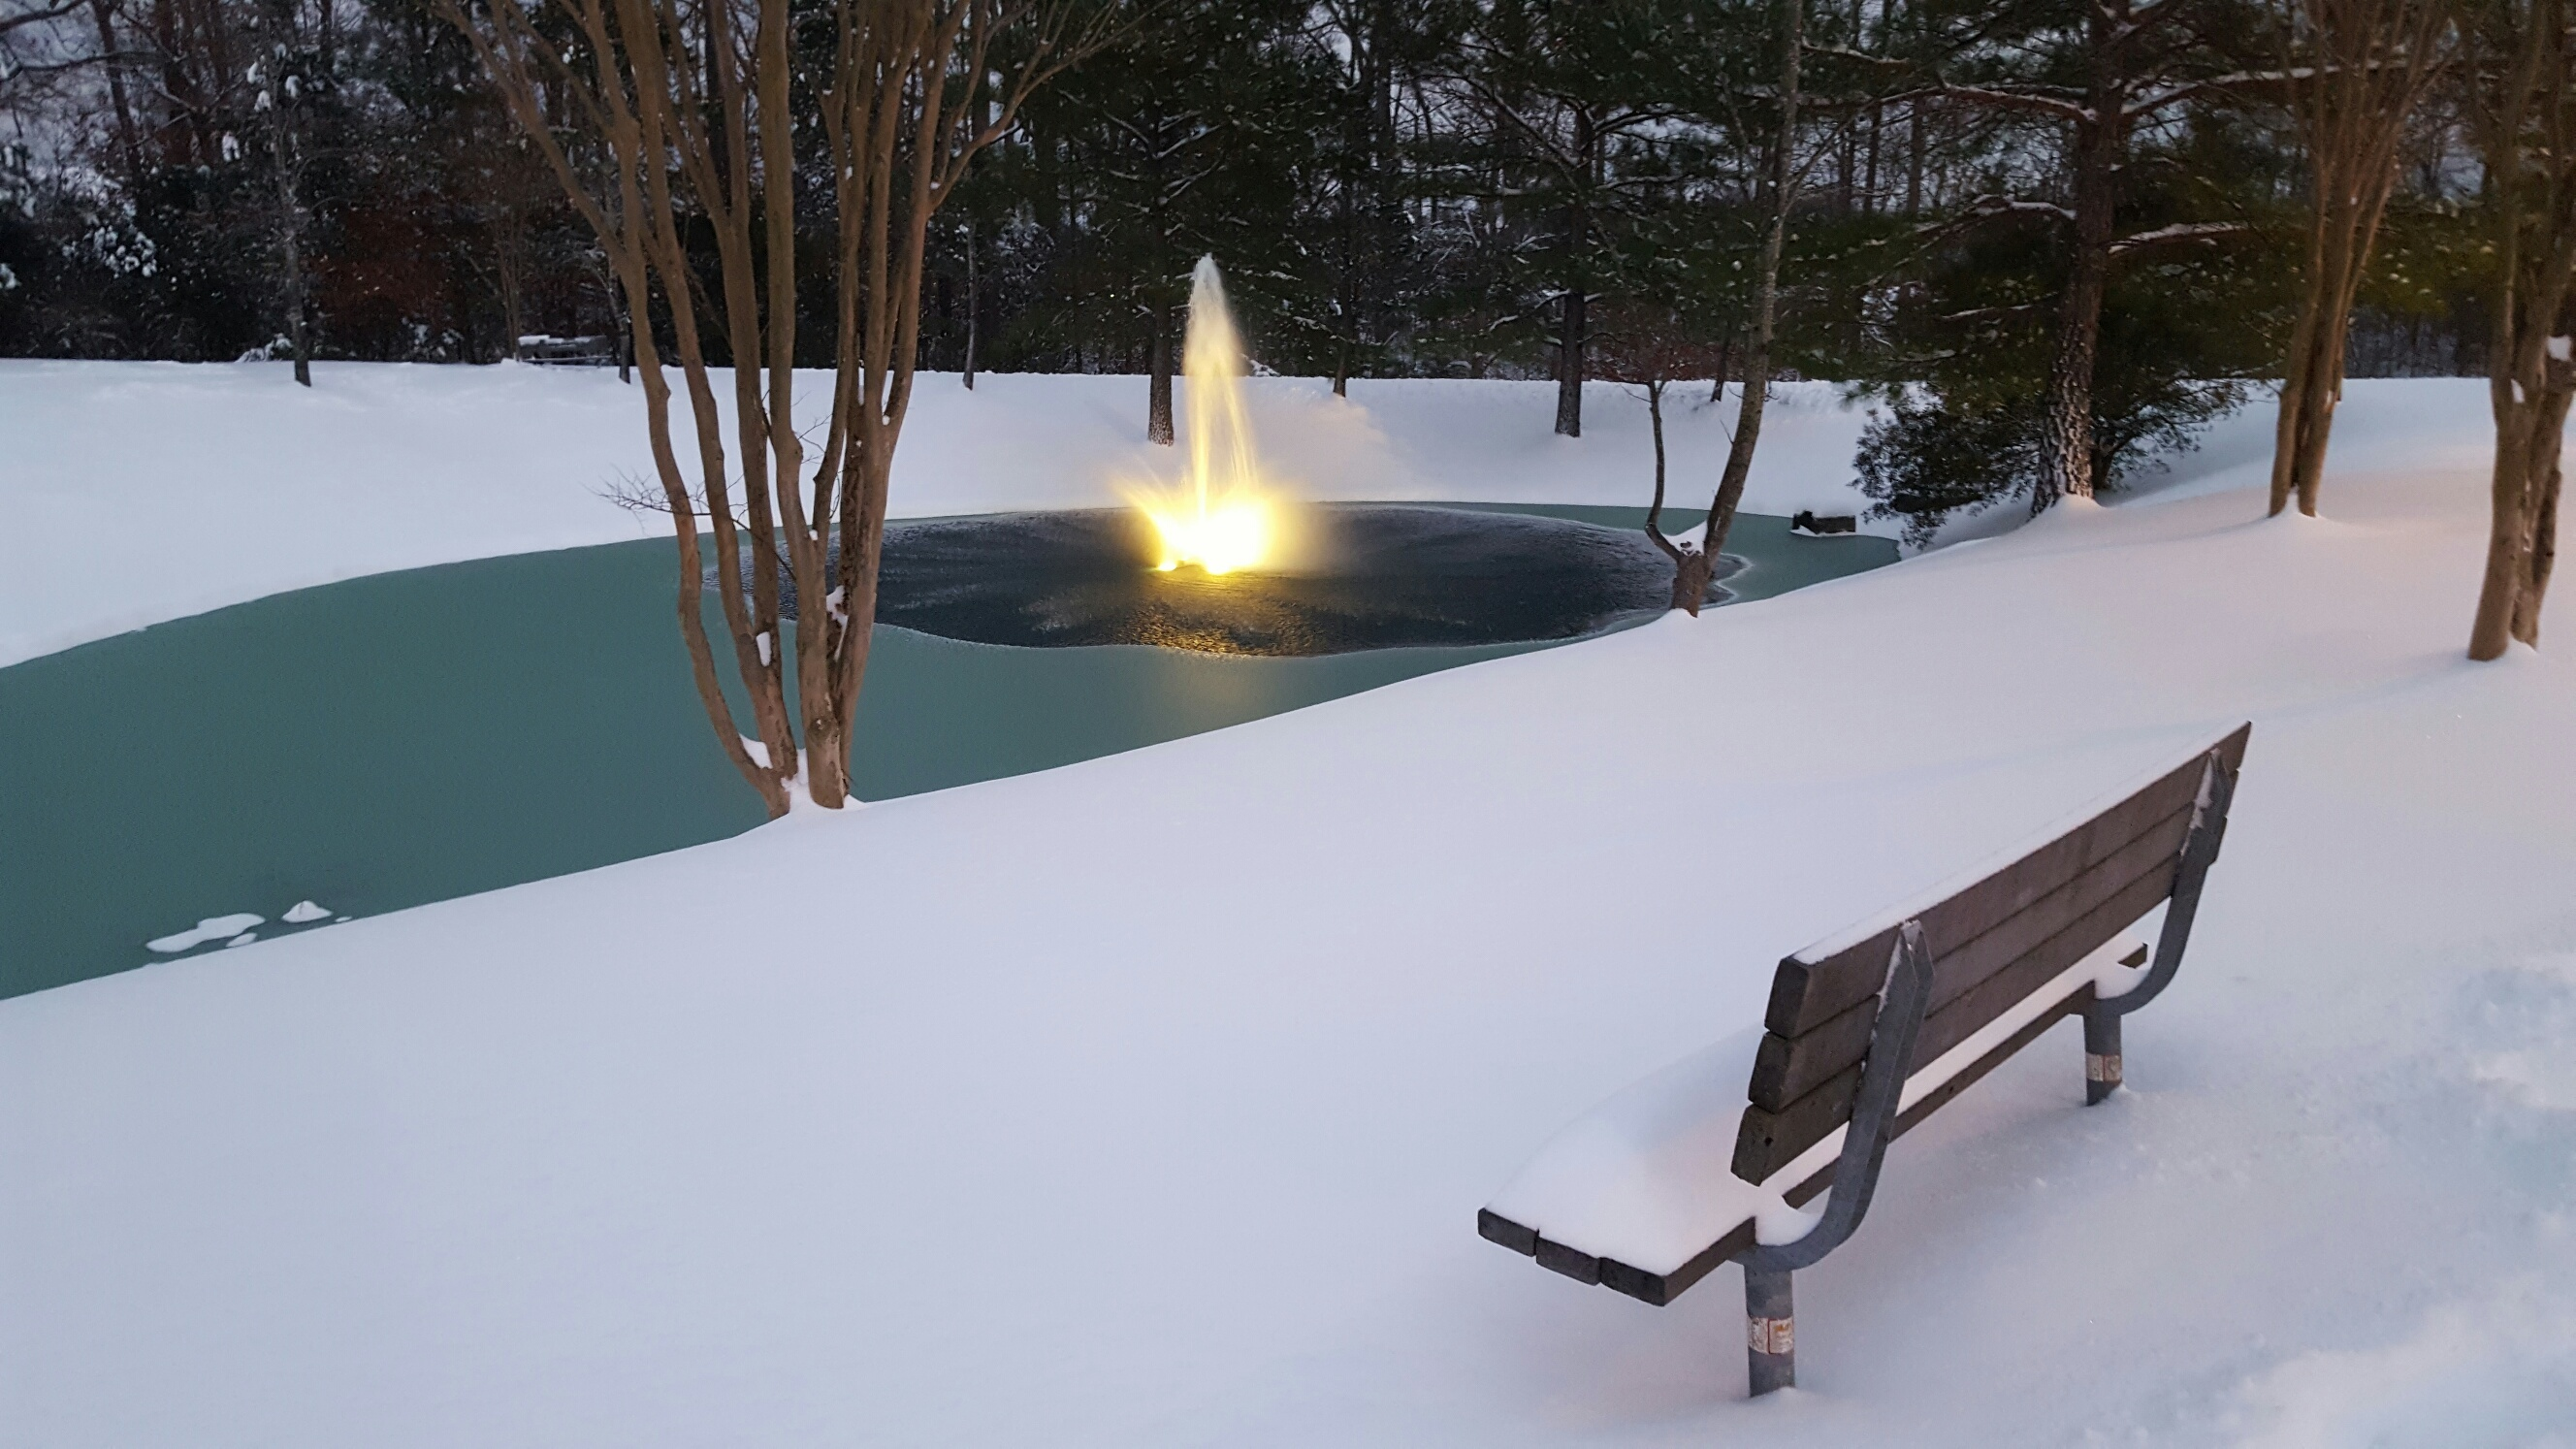 Ice-covered pond